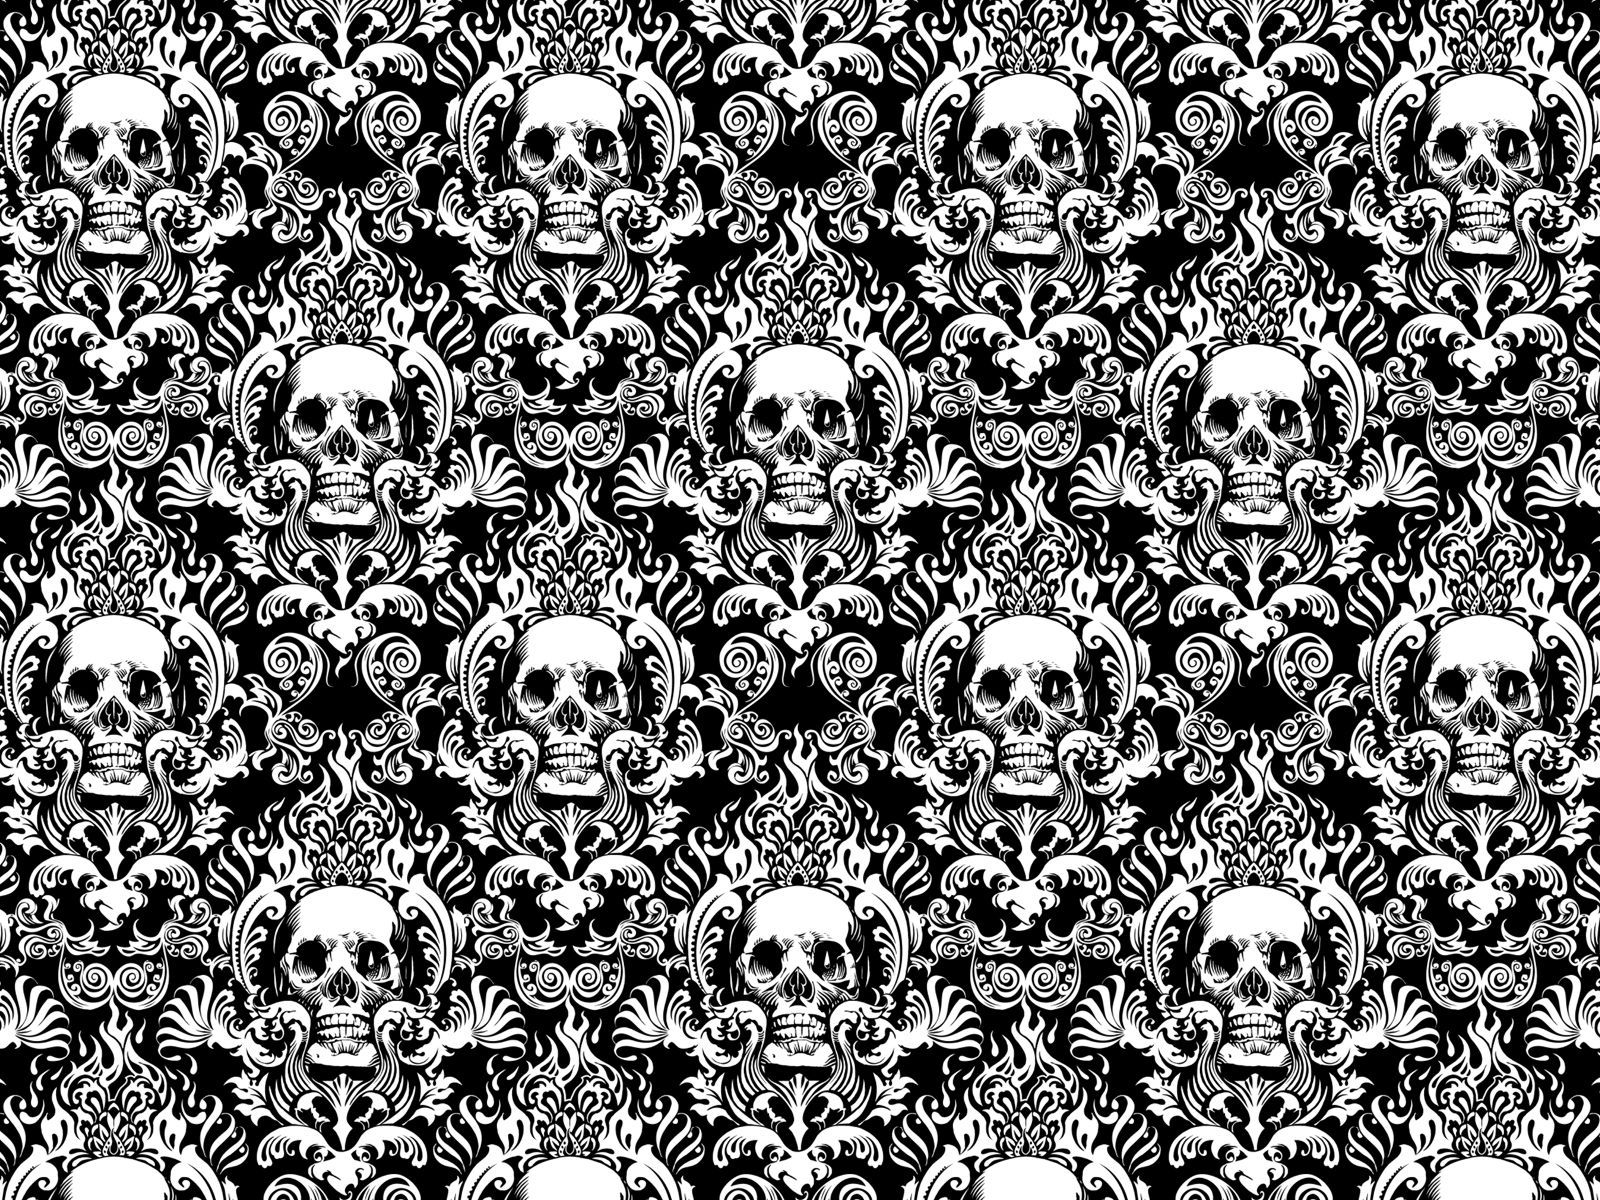 colorful sugar skull skull pattern wallpapers top free skull pattern colorful skull sugar